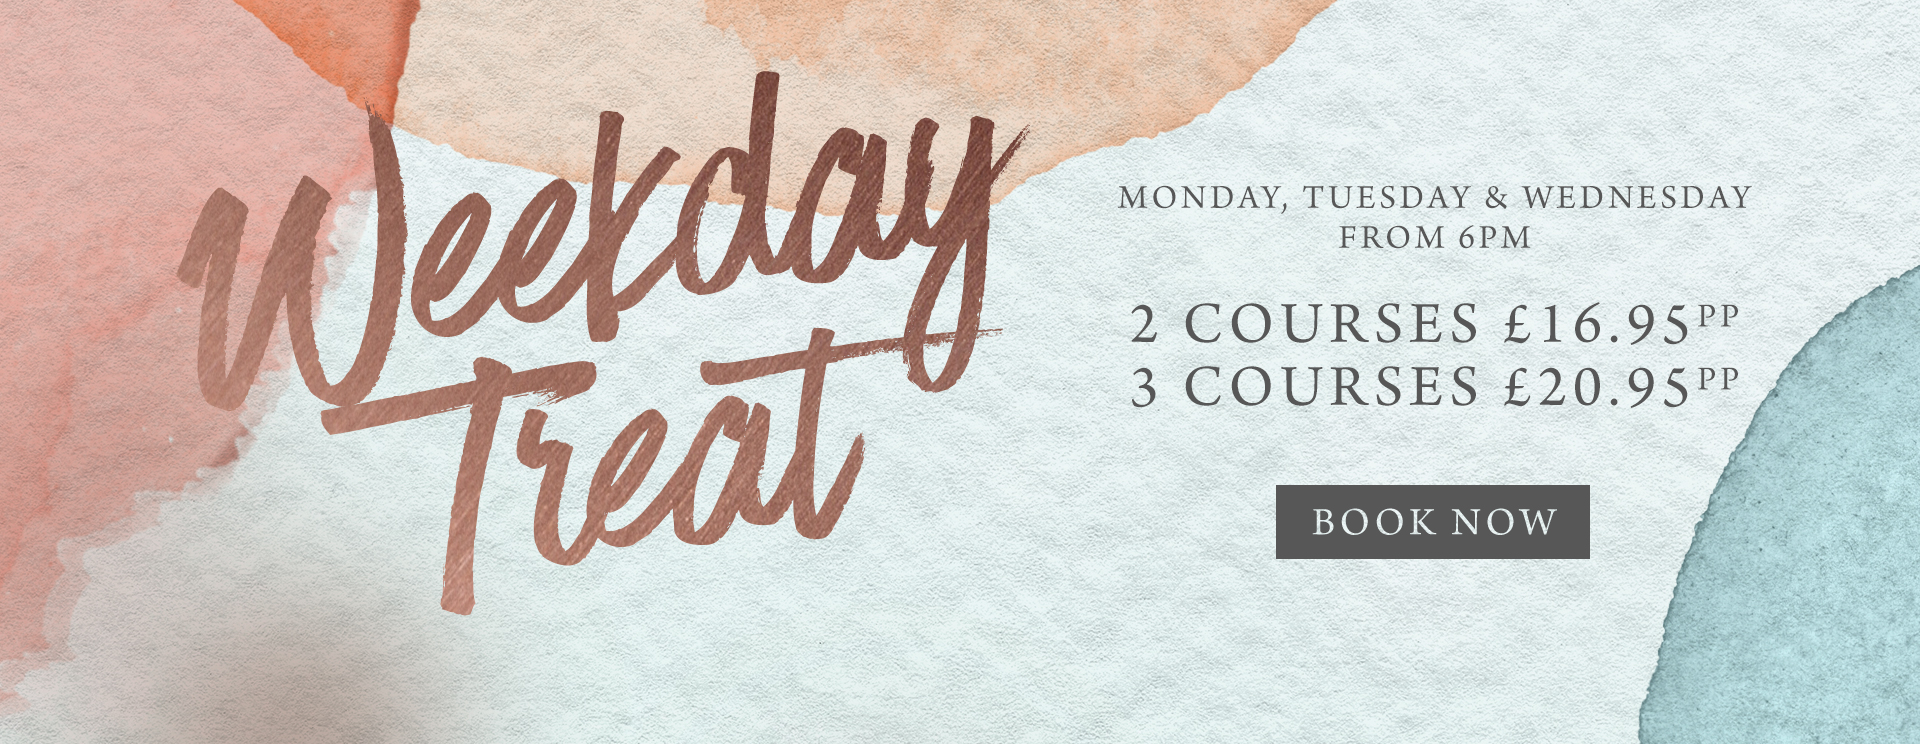 weekday-treat-header-banner-pb5.jpg